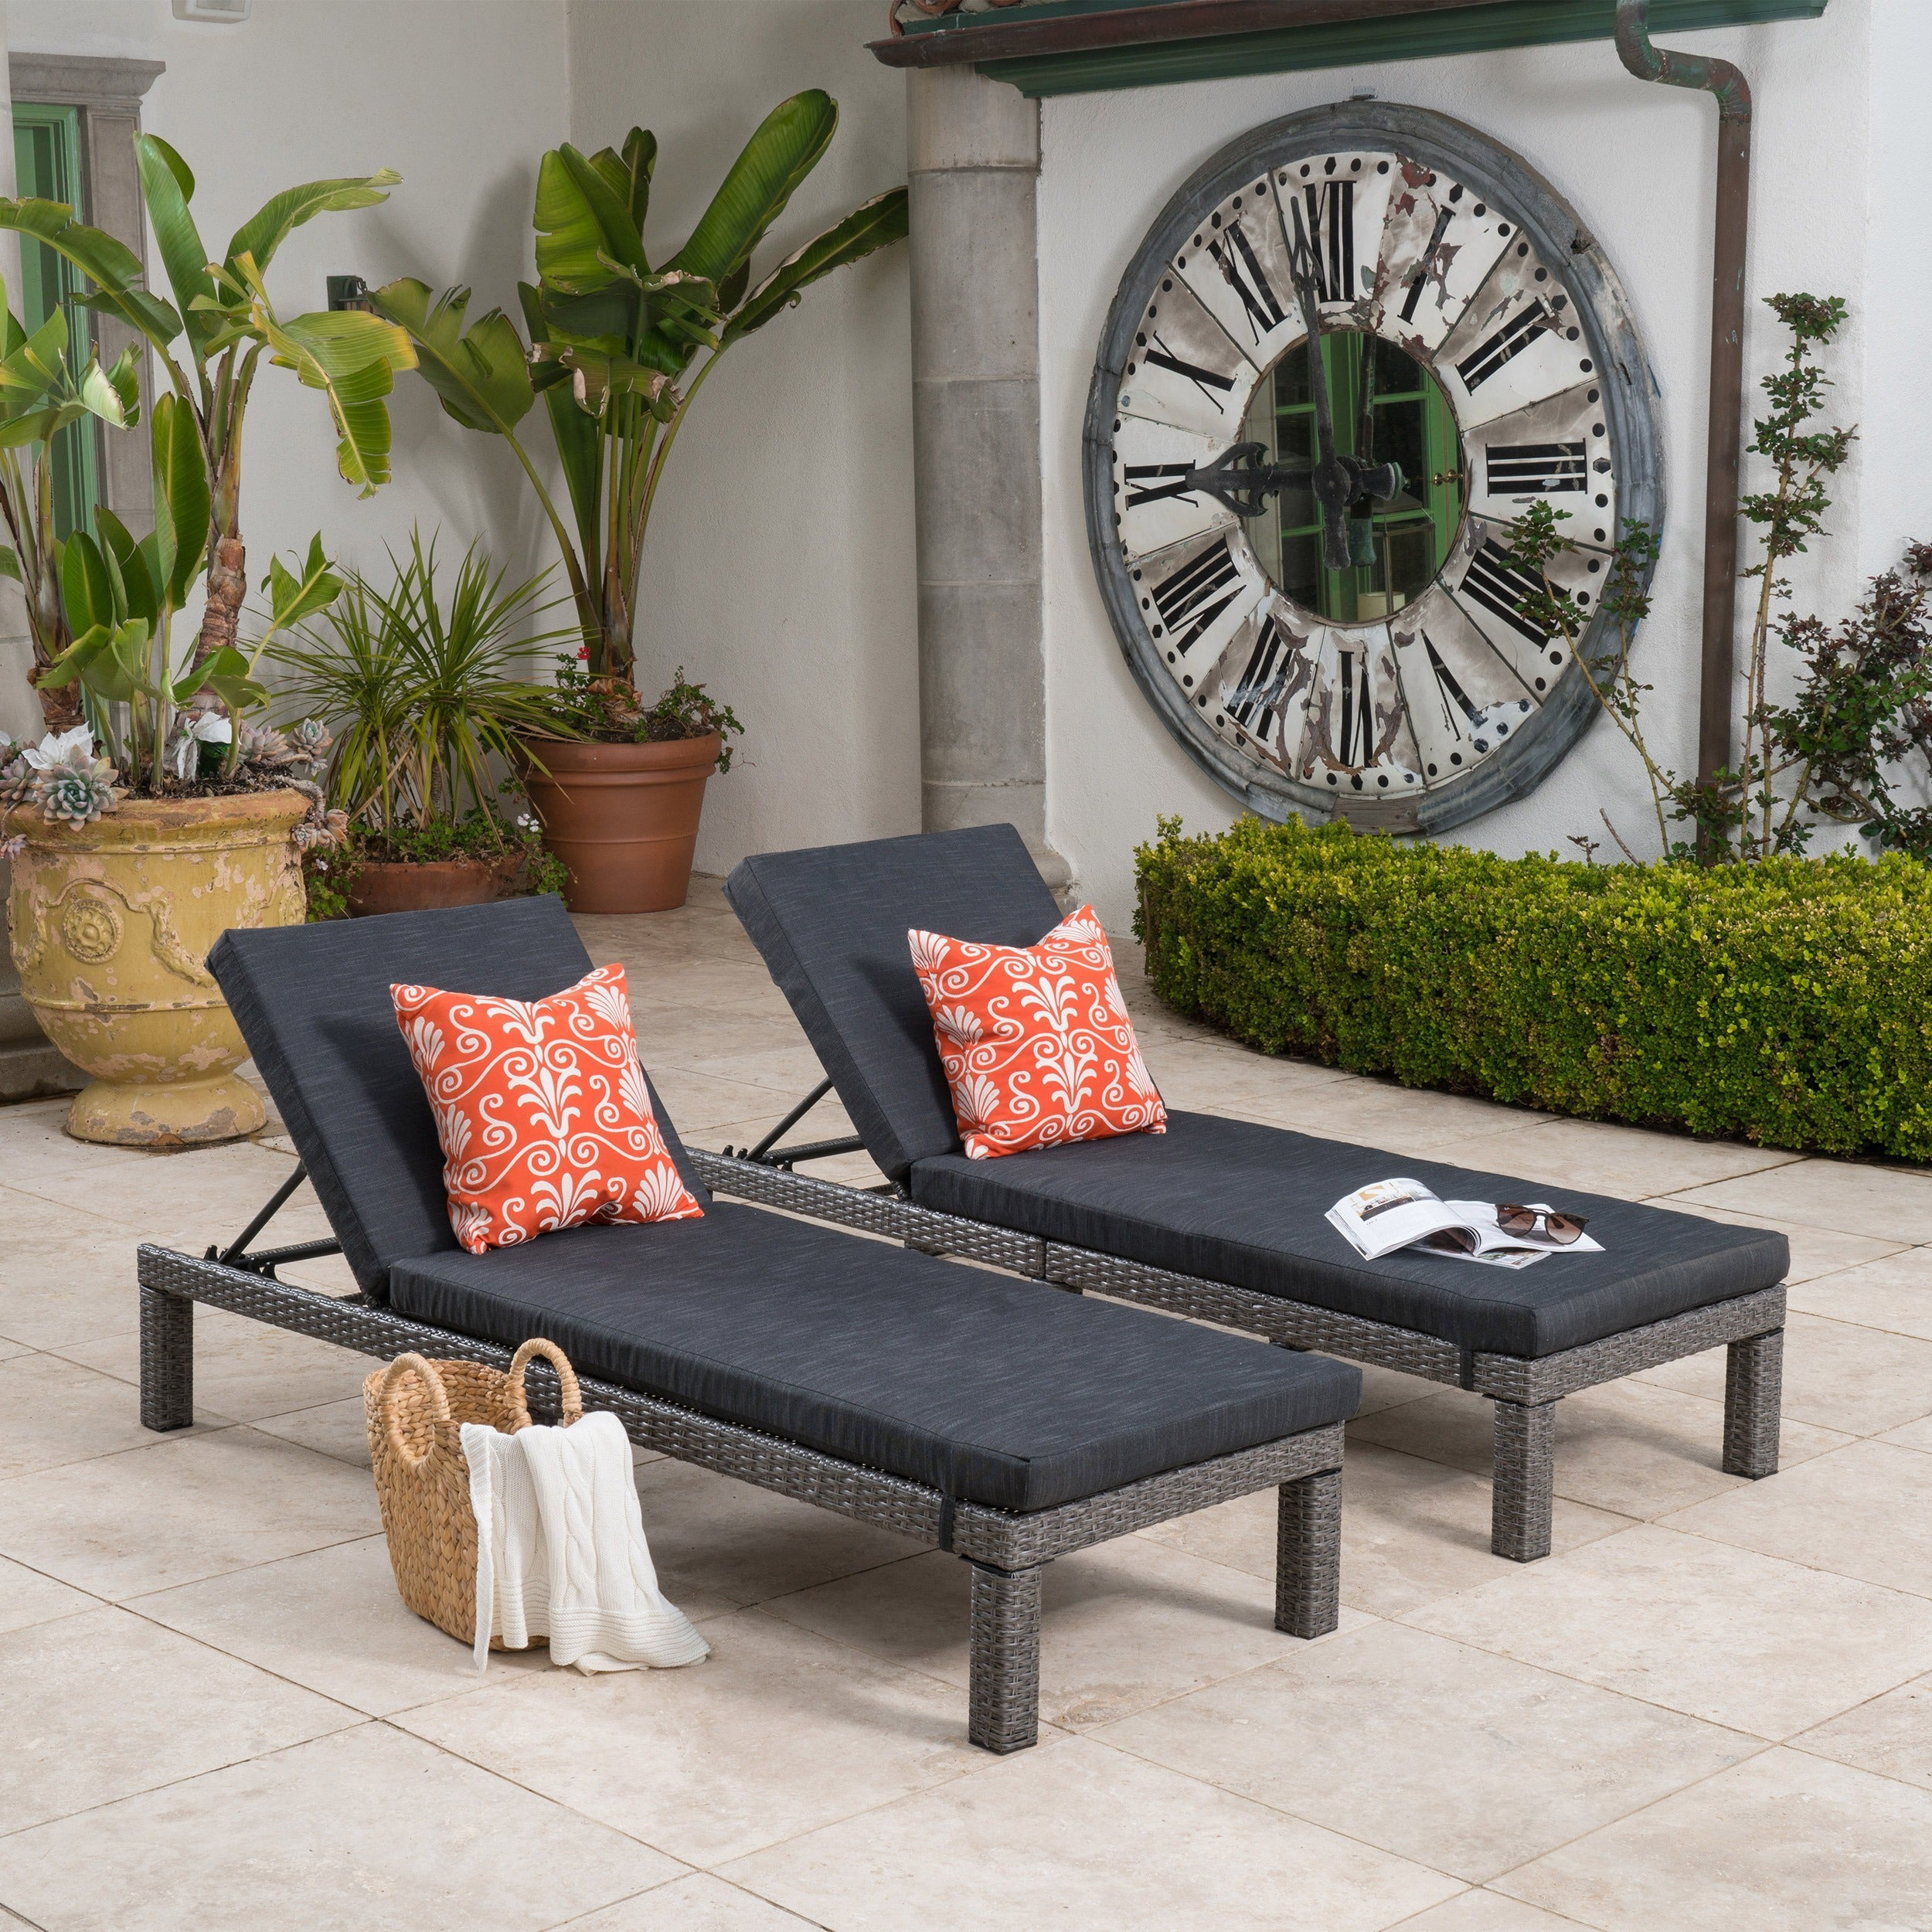 Puerta Outdoor 13 piece Wicker Patio Set with Cushions by